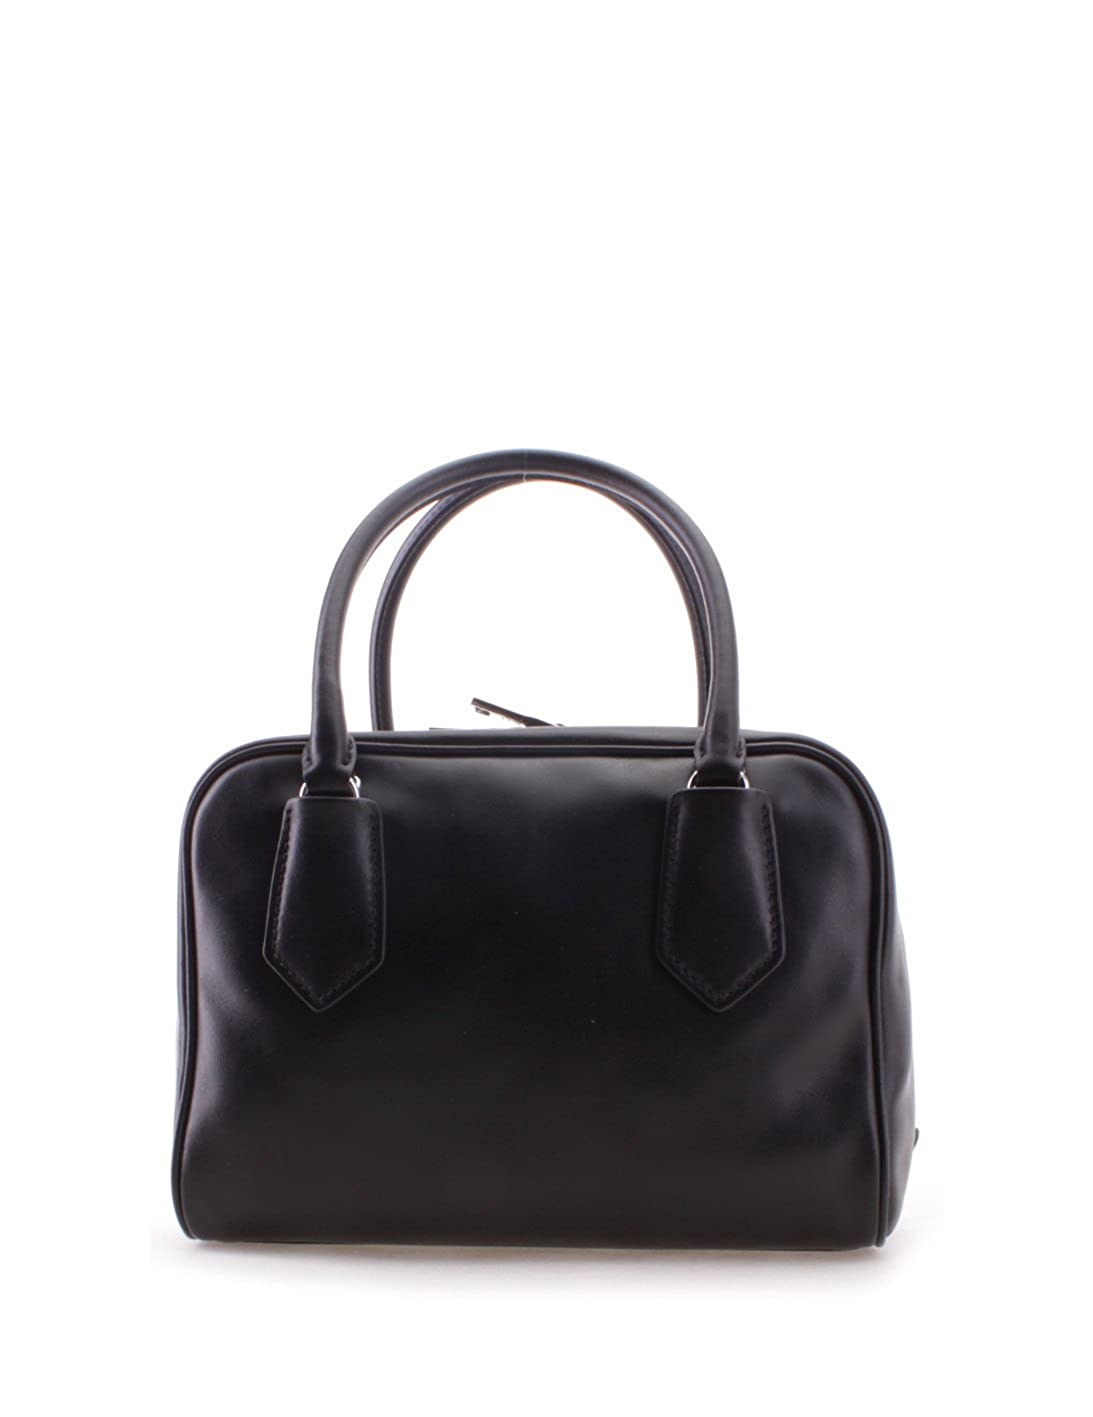 d710addd5522 Amazon.com  Prada Milano Leather Tote Womens Handbag Shoulder Bag - 100%  Guaranteed Authentic - Black Fashion Purse Bag (Pink Lining)  Clothing